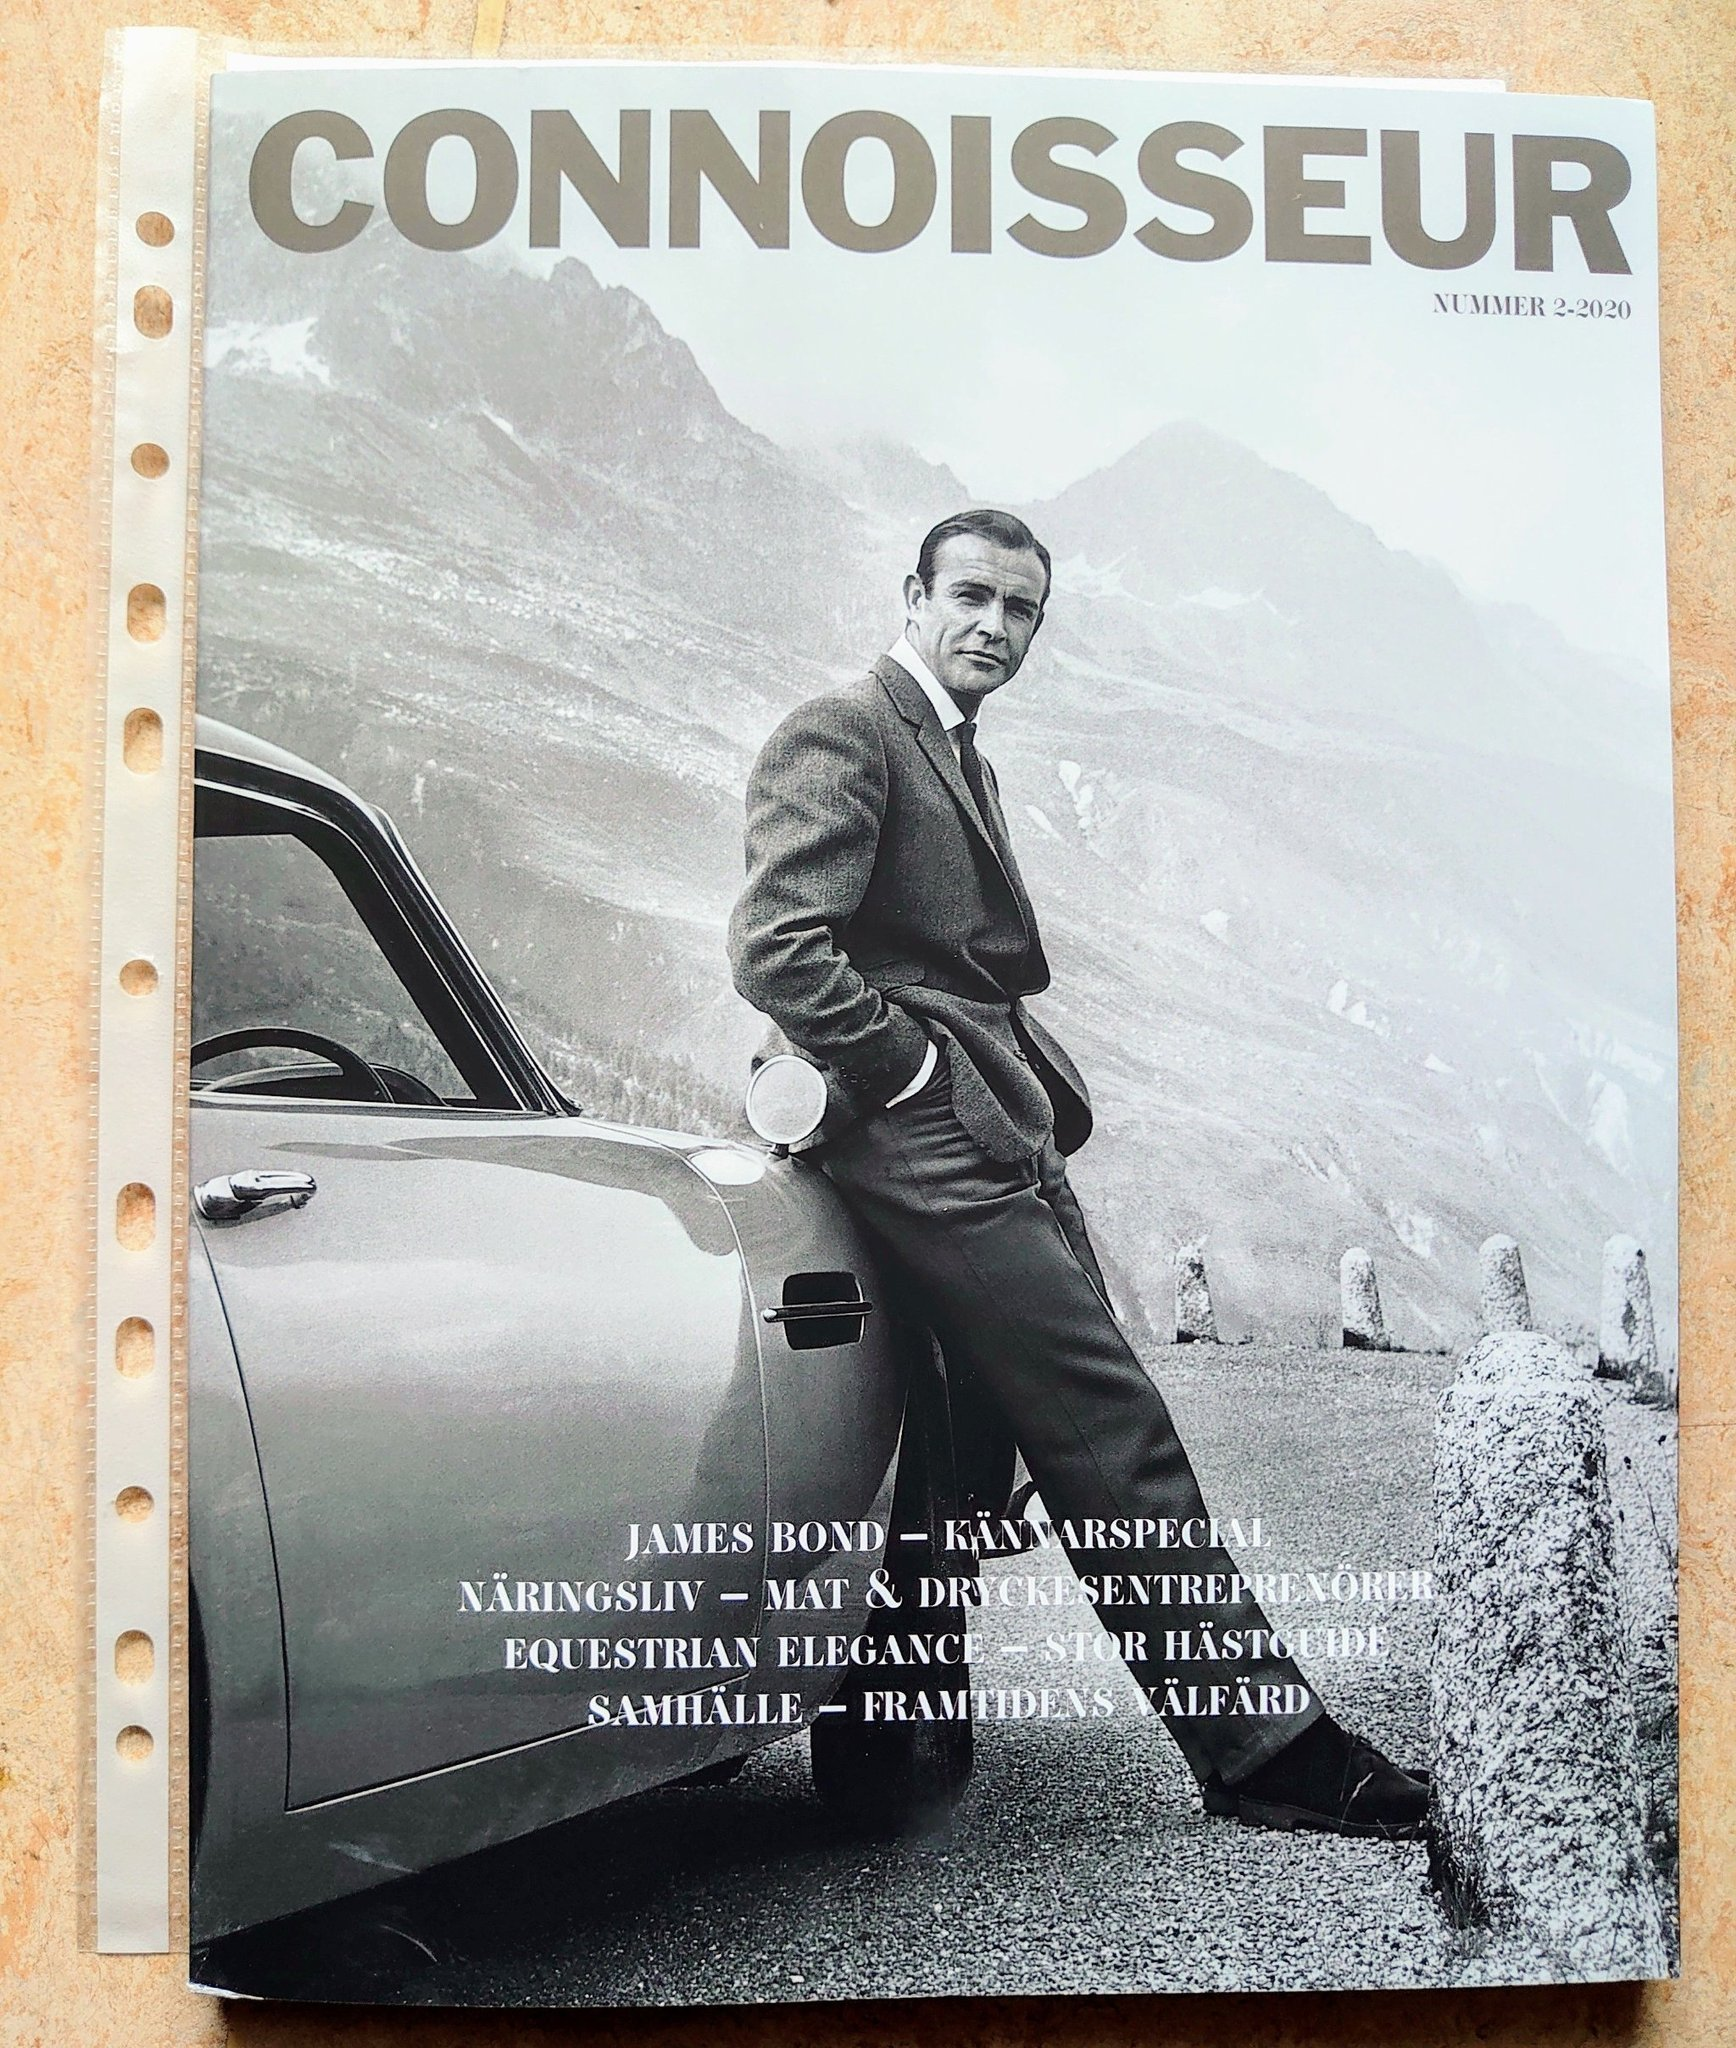 "MAGASIN - CONNOISSEUR NR 2 2020 - ""JAMES BOND - KÄNNARSPECIAL..."" /ny /oläst ex."